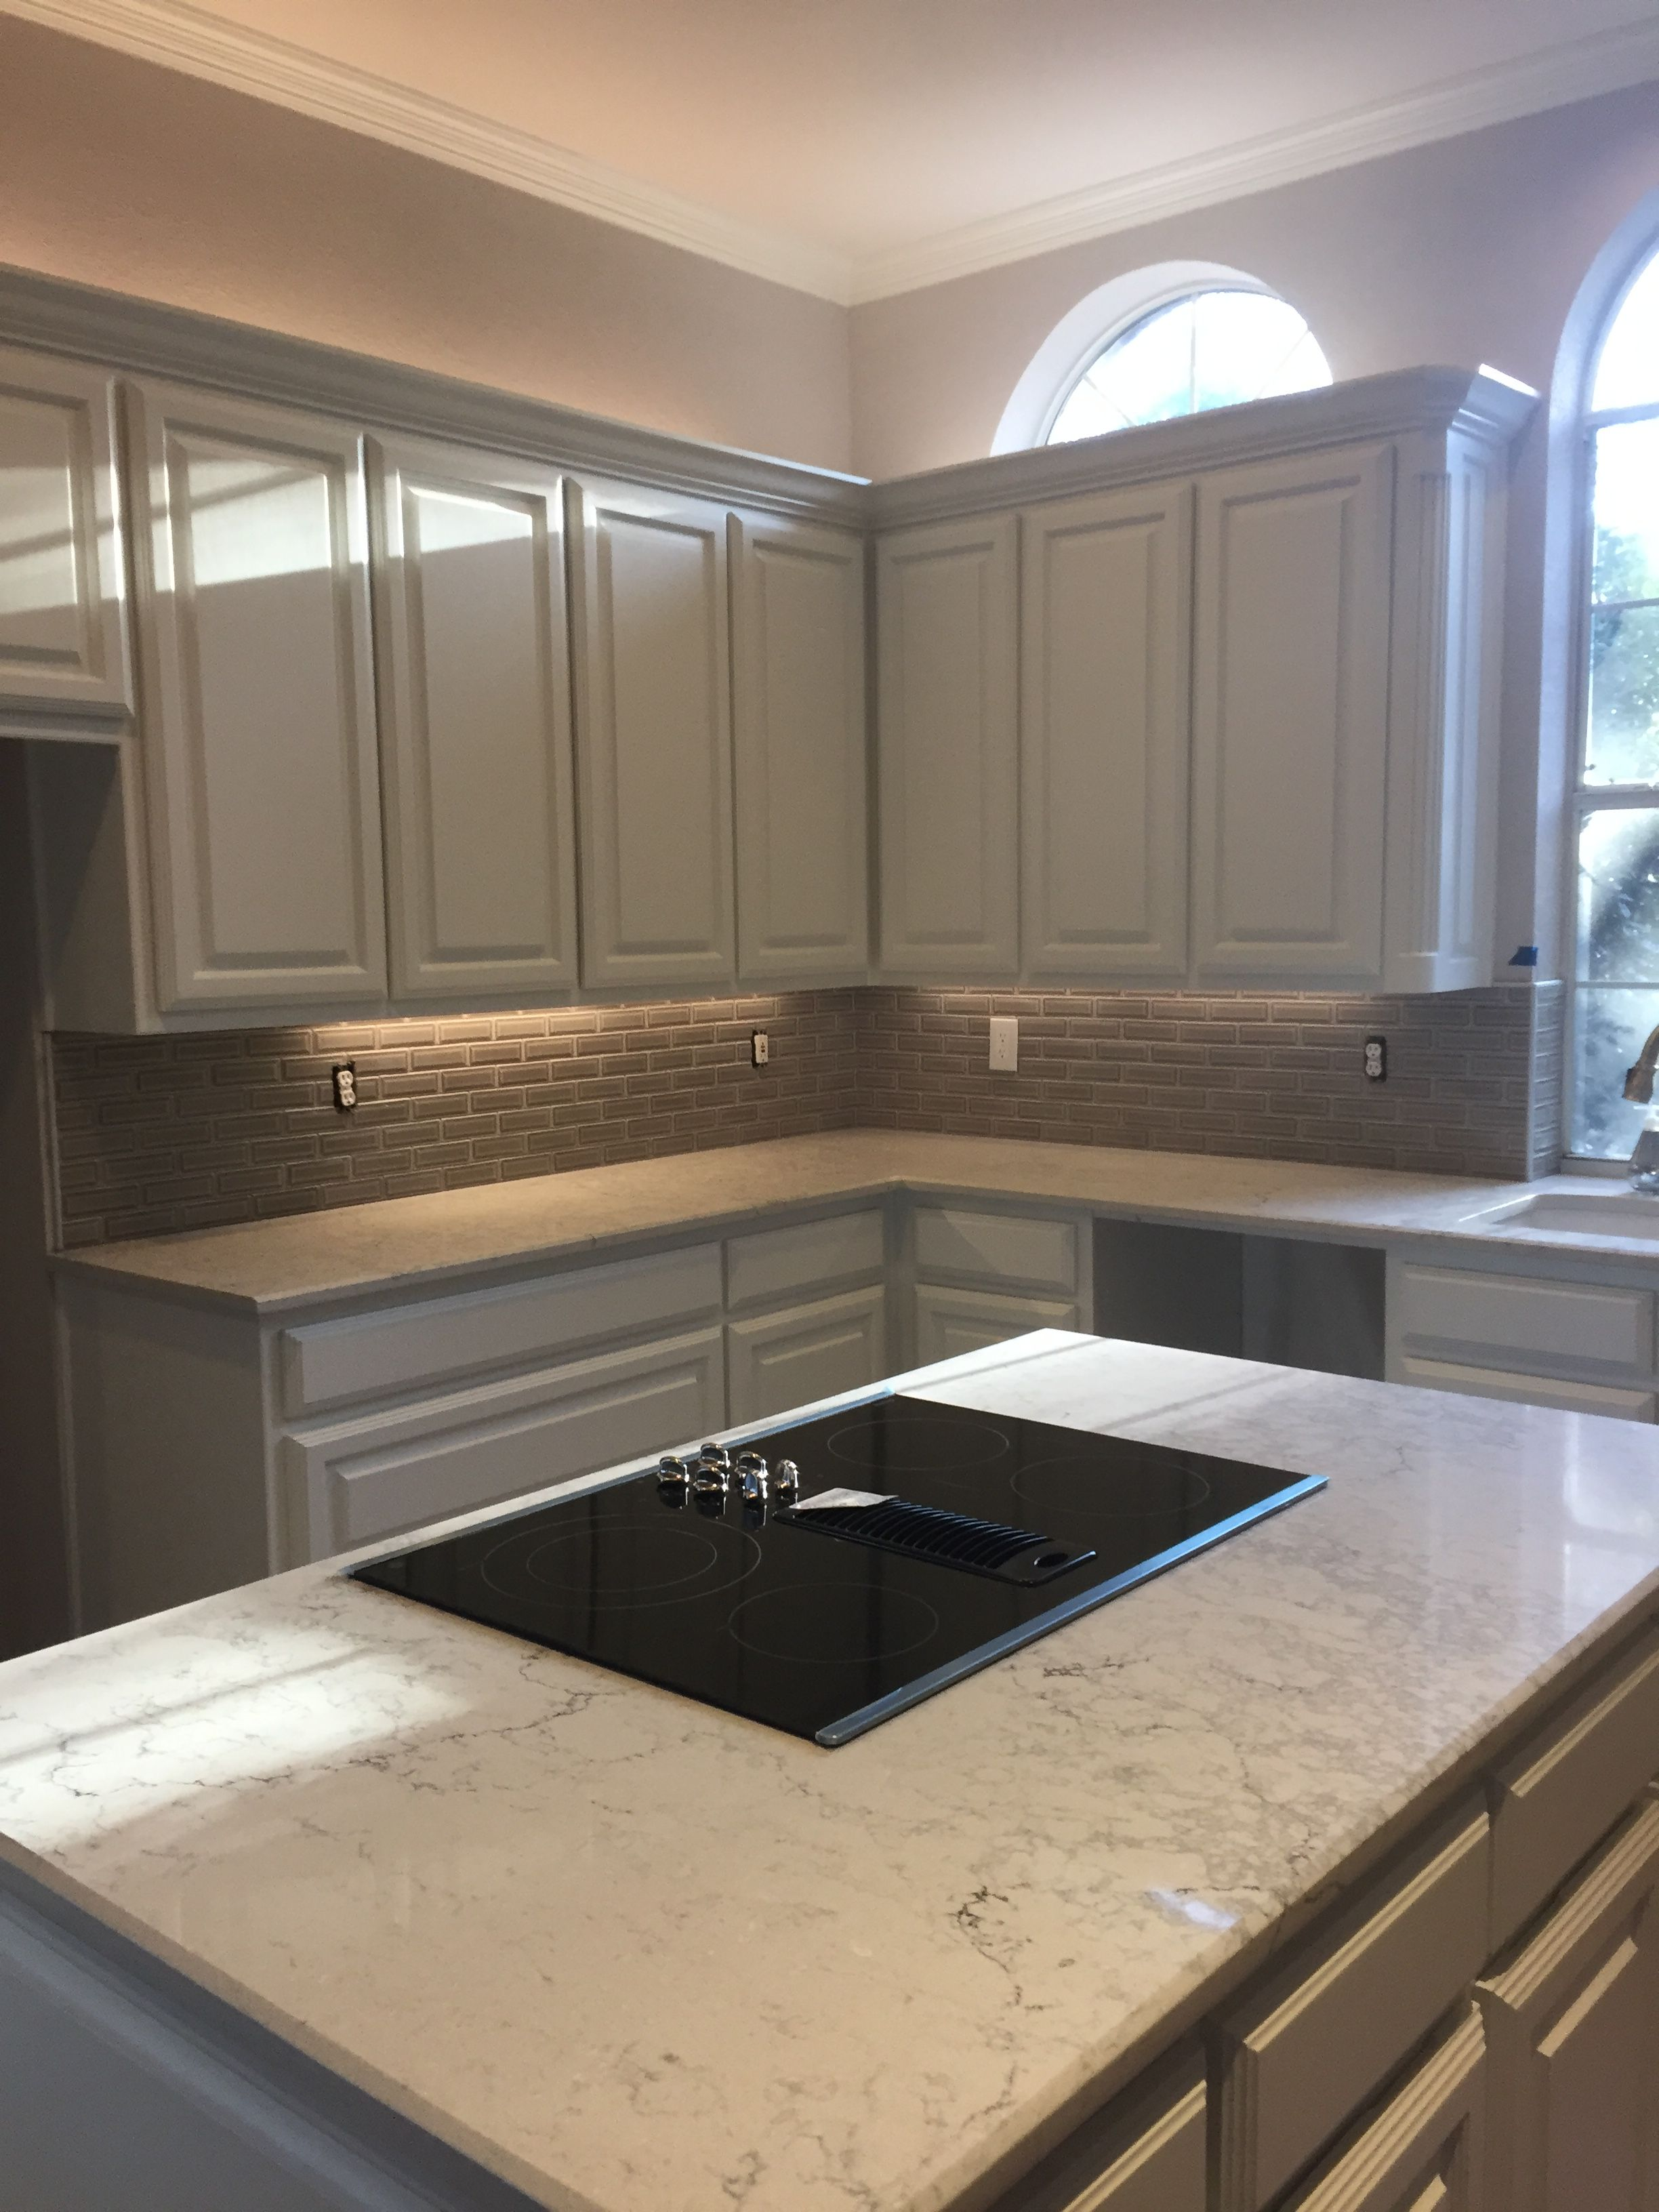 Caesarstone Montblanc Quartz Counters With Msi Dove Gray 2x6